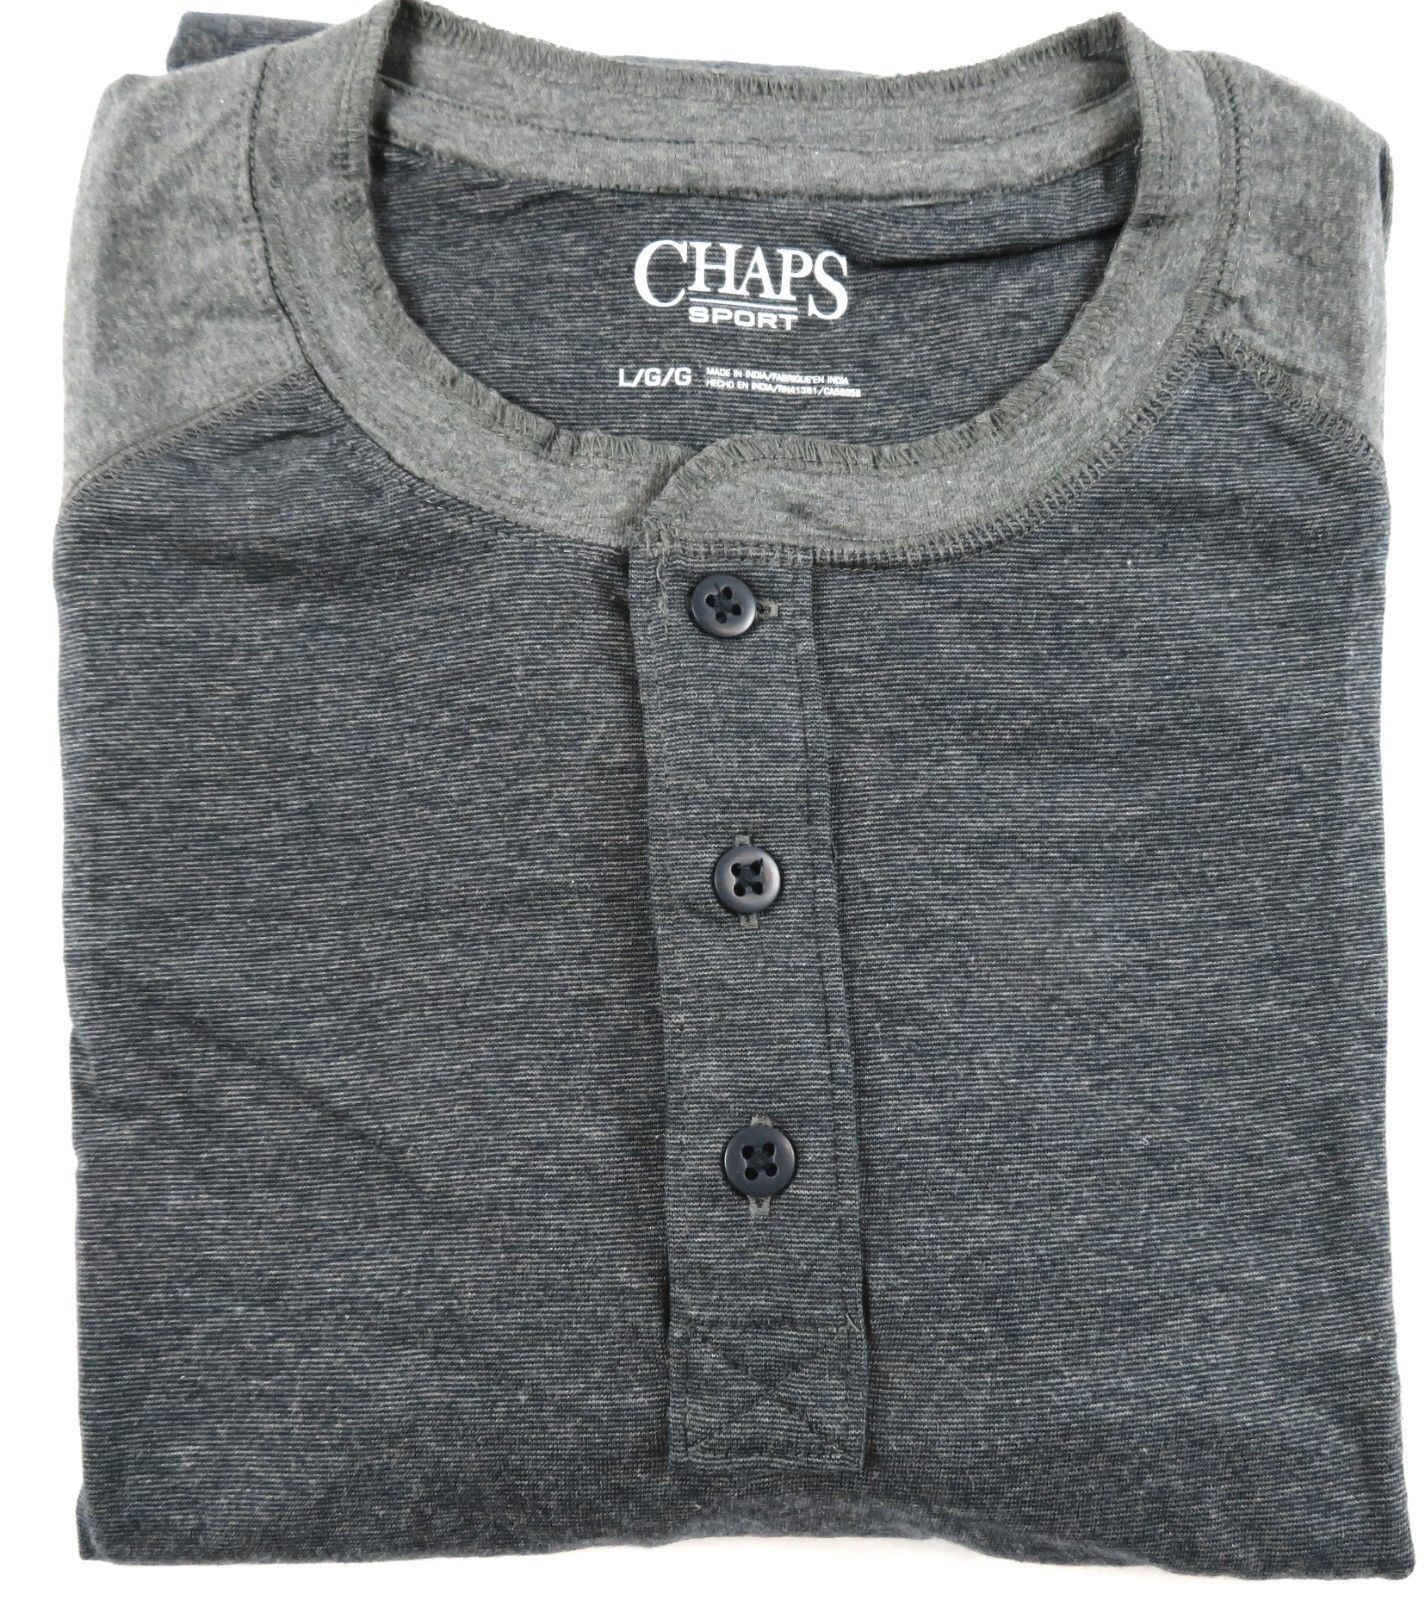 Chaps Sport Men's Henley Classic Fit Raglan Shirt Long Sleeve Tee Fine Charcoal